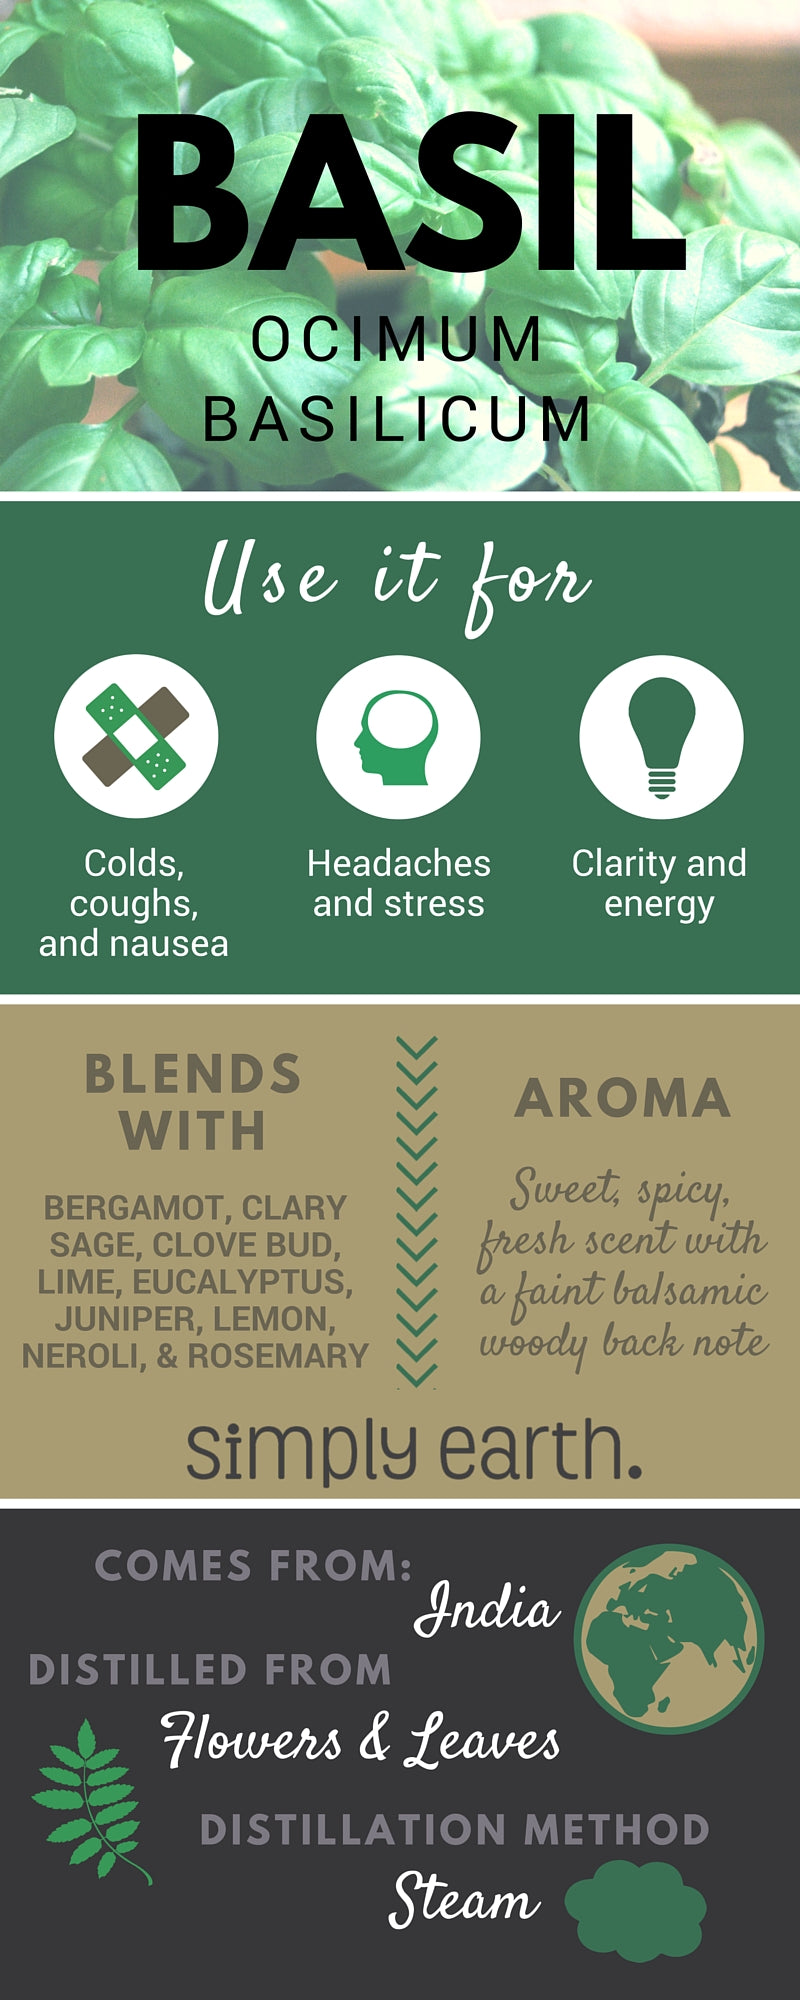 sweet basil essential oil facts